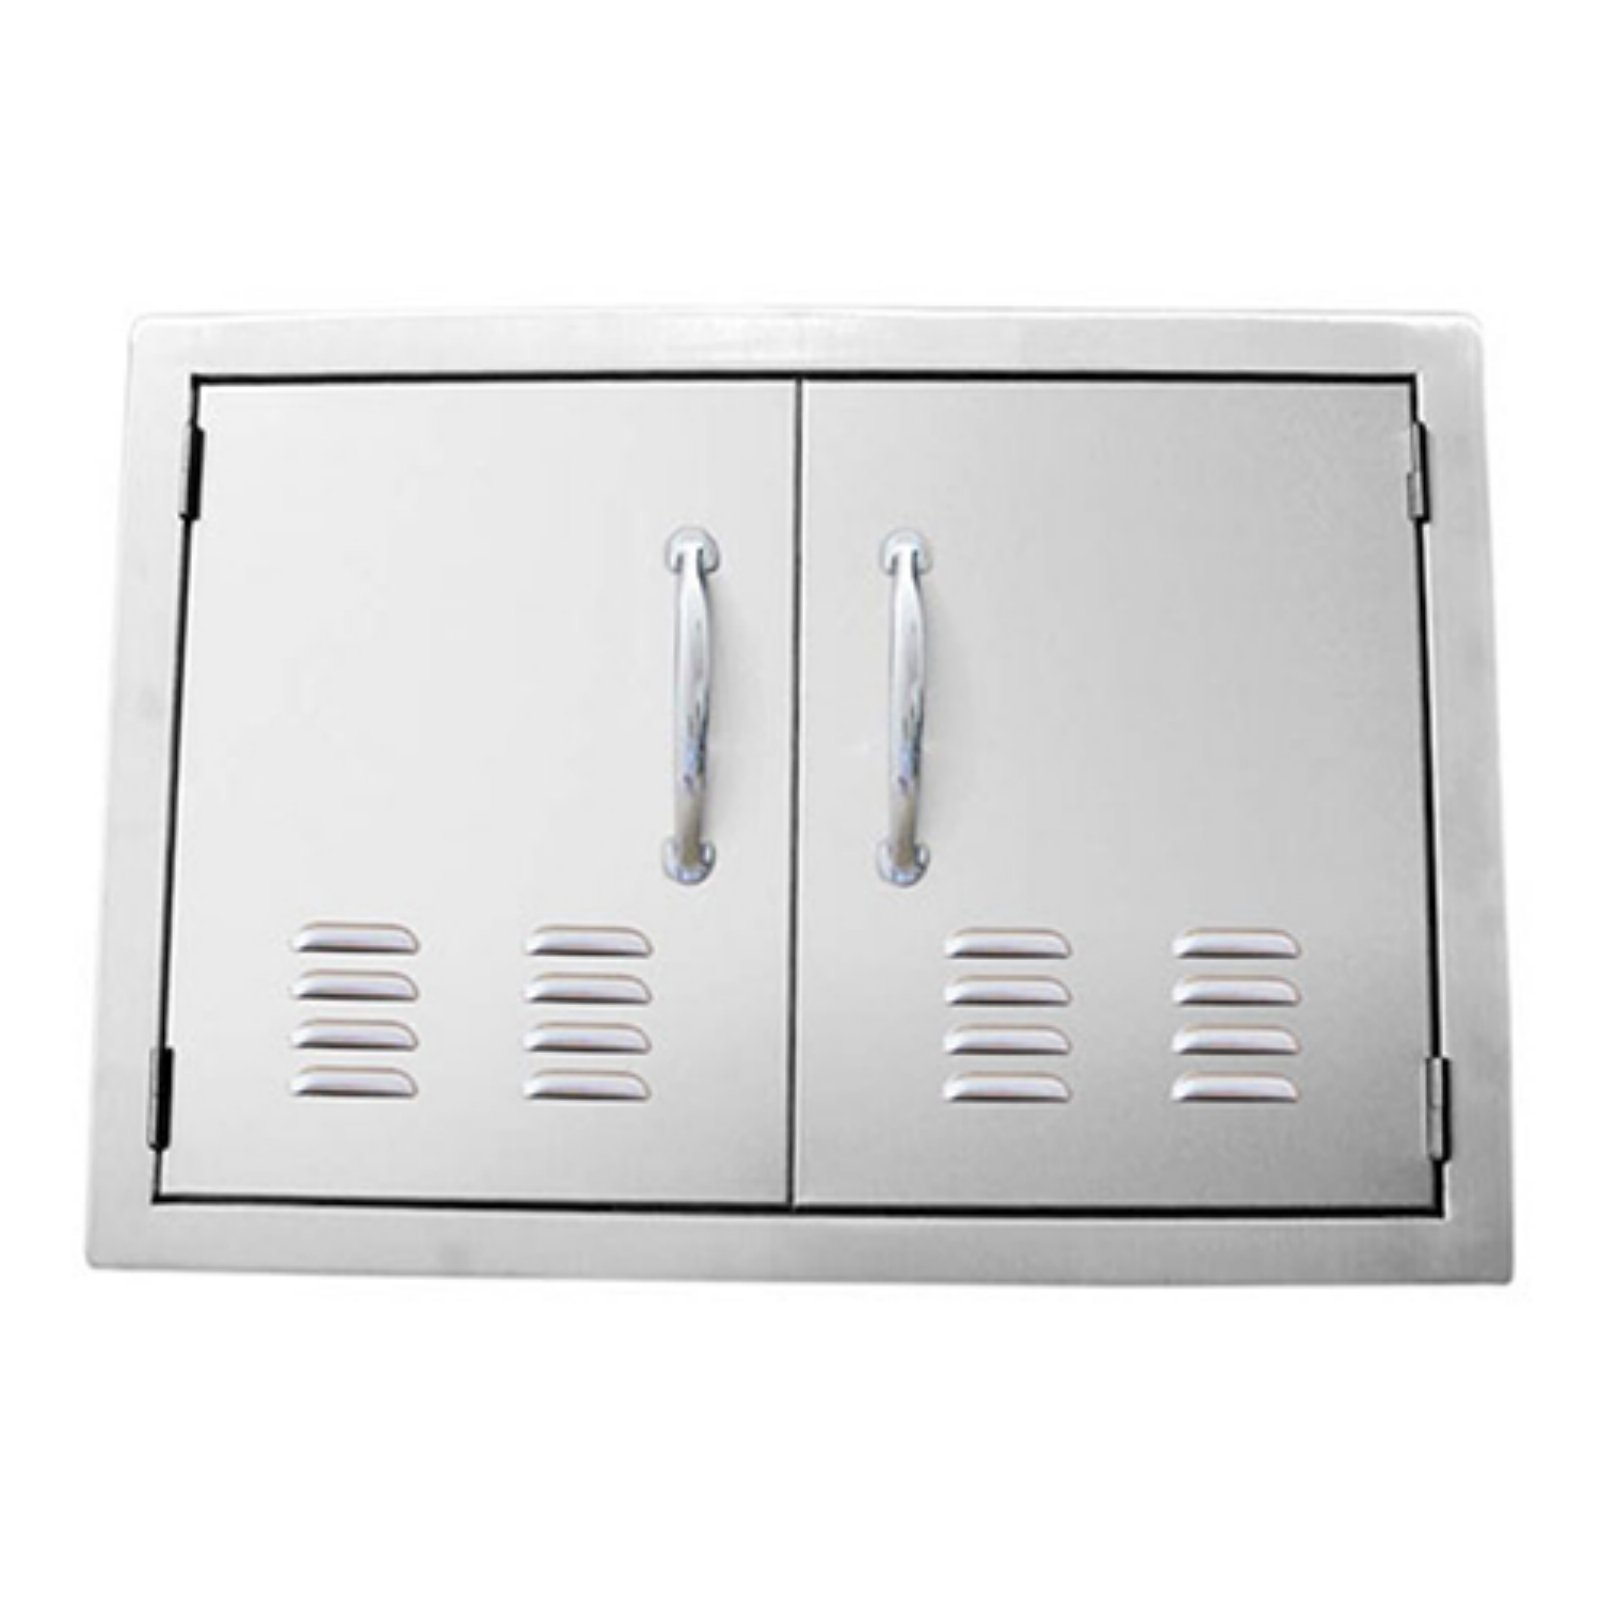 Sunstone Grills Classic Series Double Access Flush Mount Doors with Vents